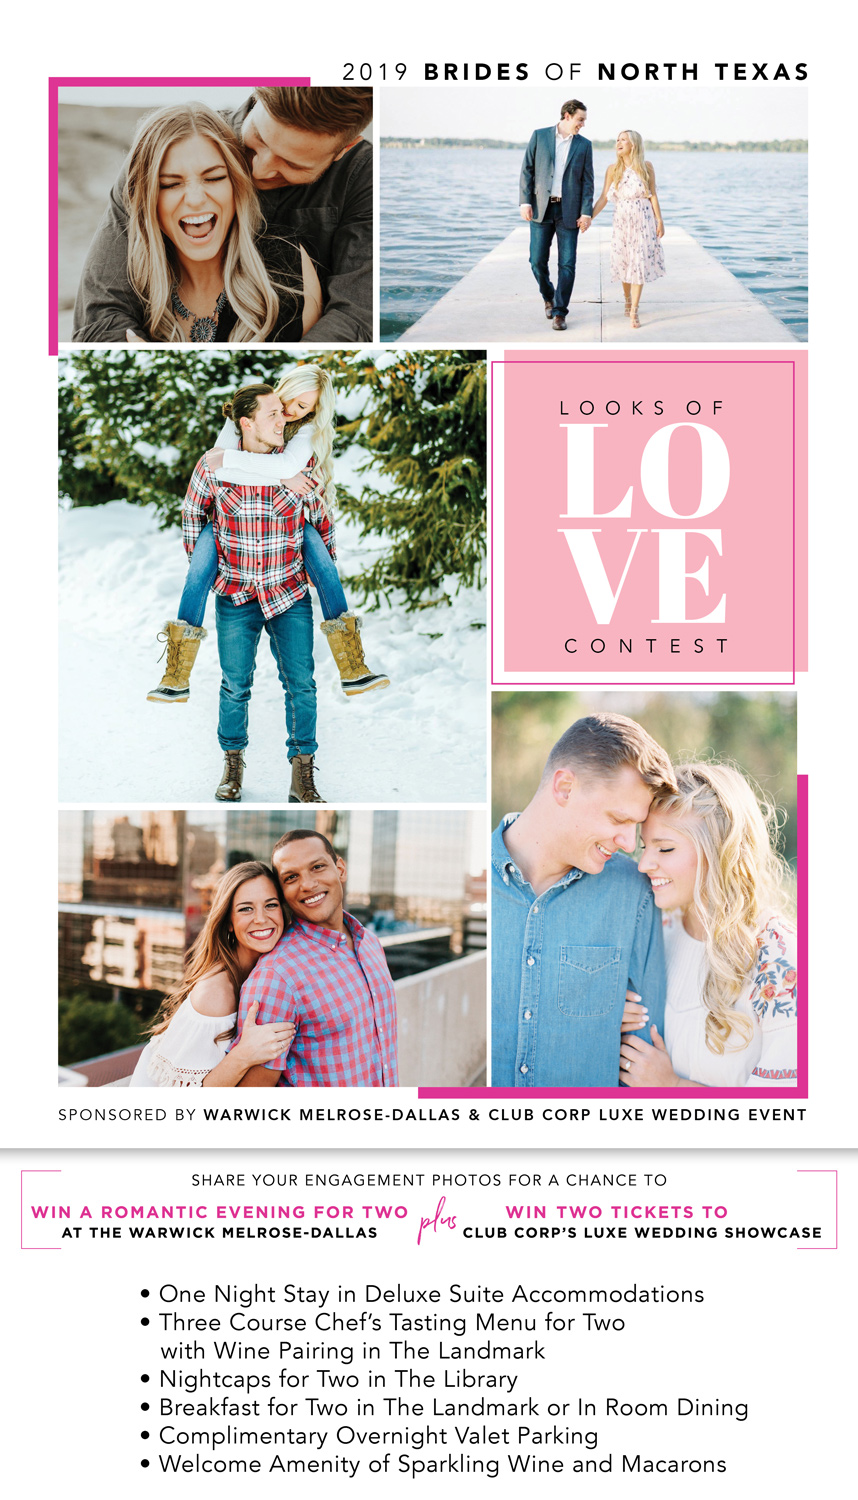 Looks of Love 2019 Contest - Sponsored by The Warwick Melrose-Dallas & The LUXE Wedding Event